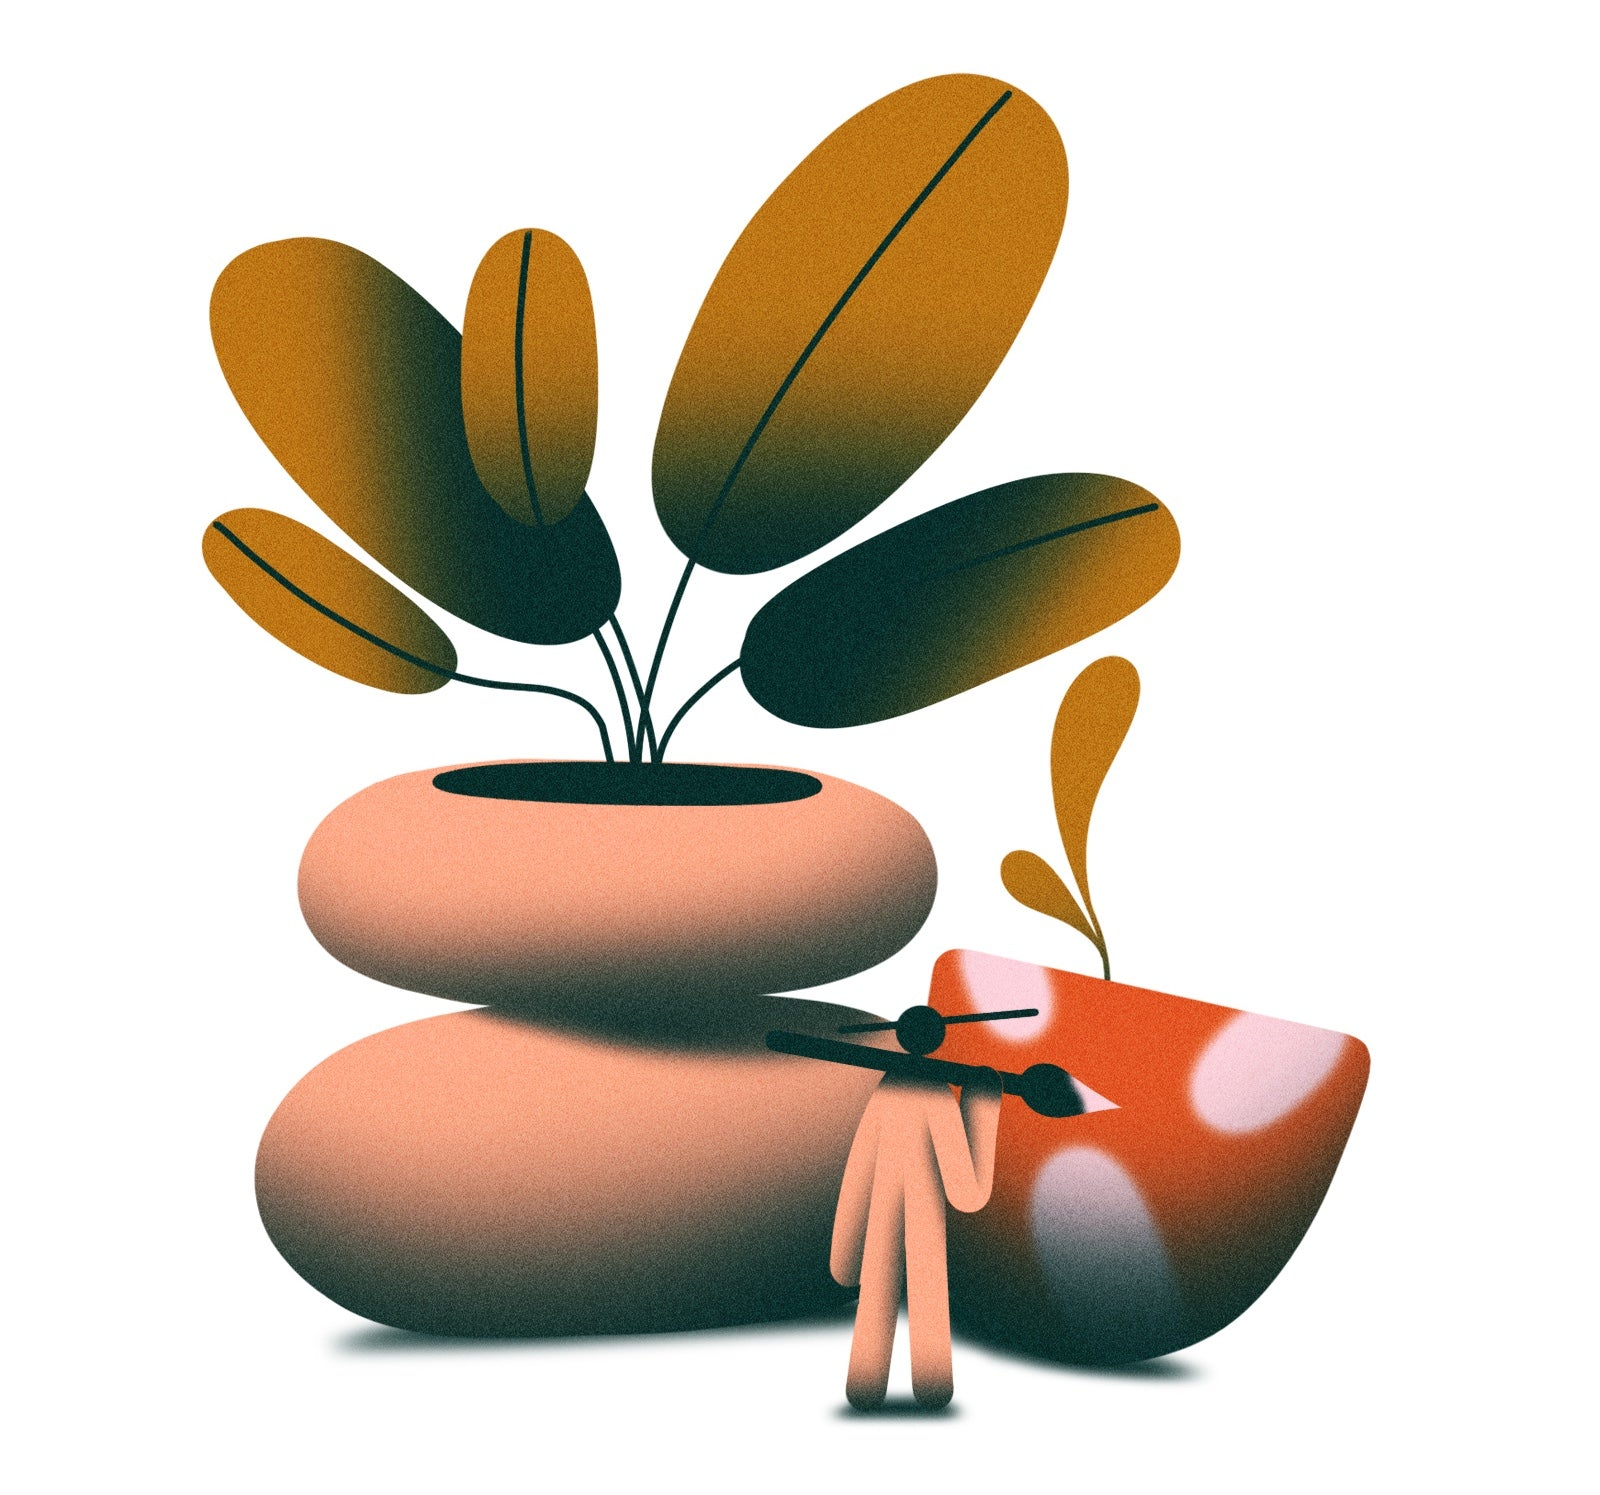 Illustration of a person painting oversized plant pots